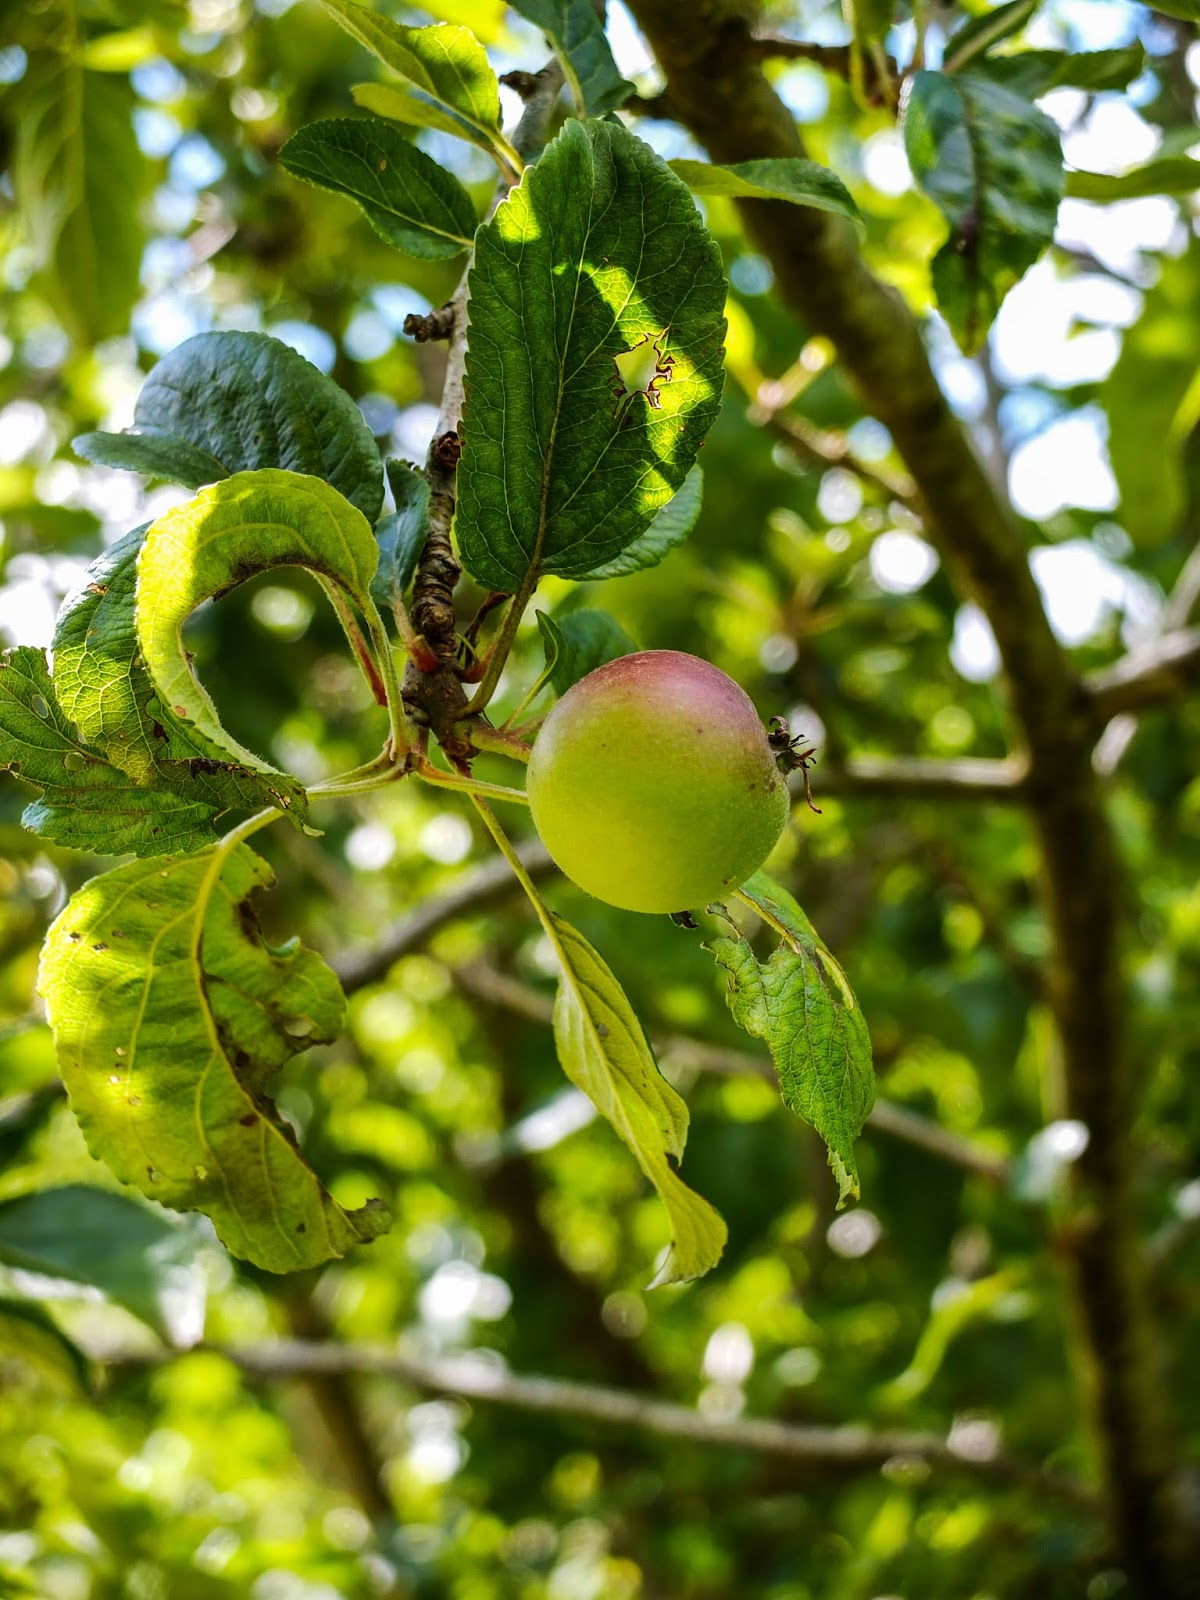 An apple growing on a tree.